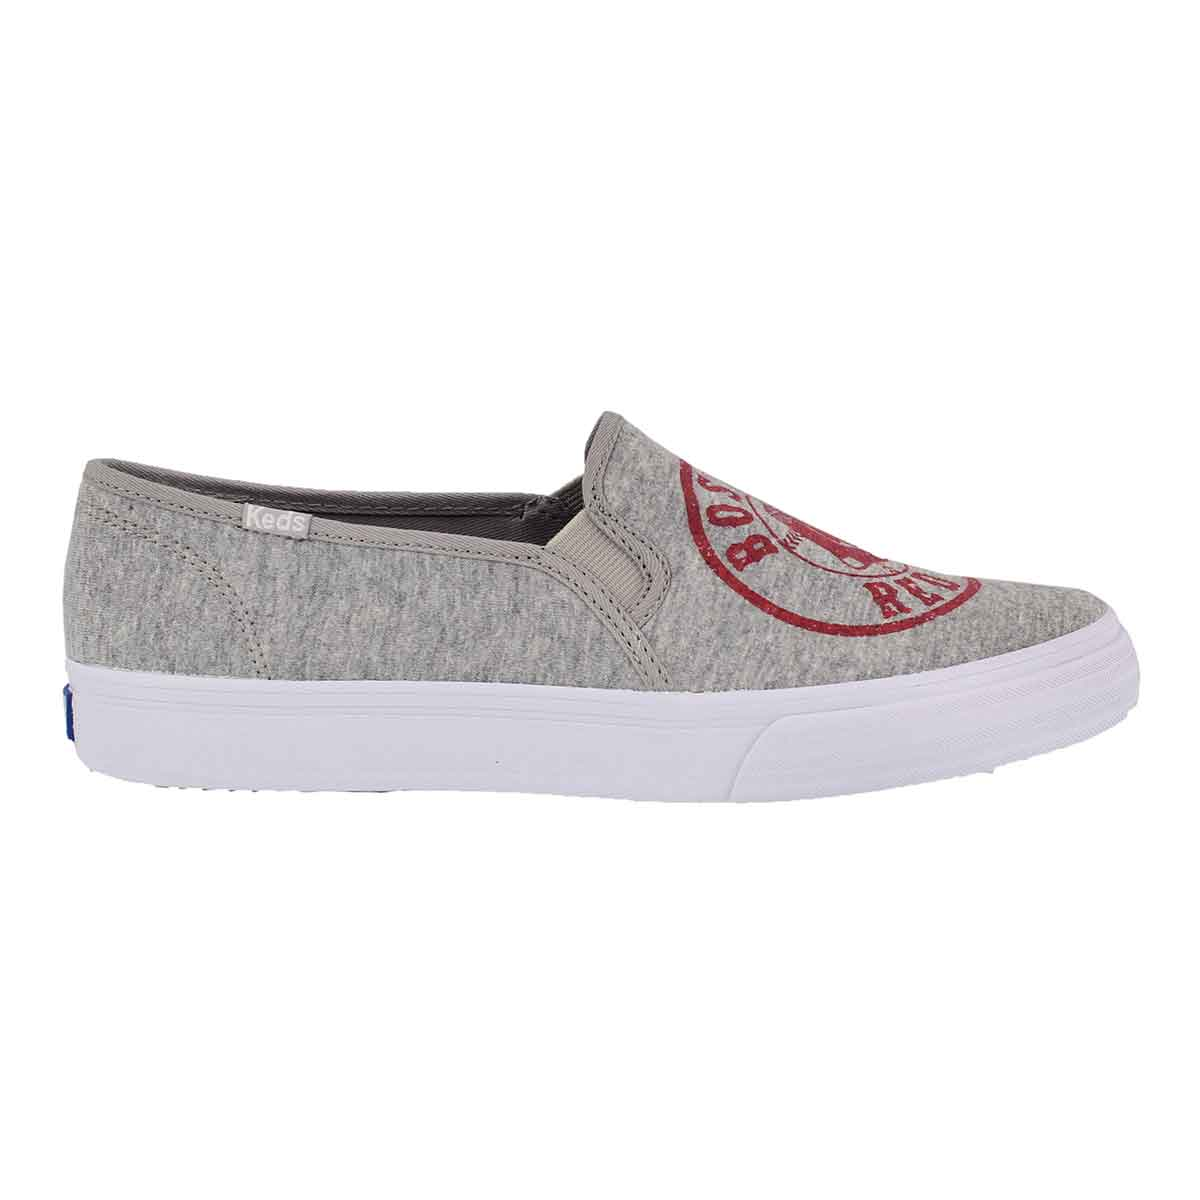 Lds Double Decker Red Sox gry snkr